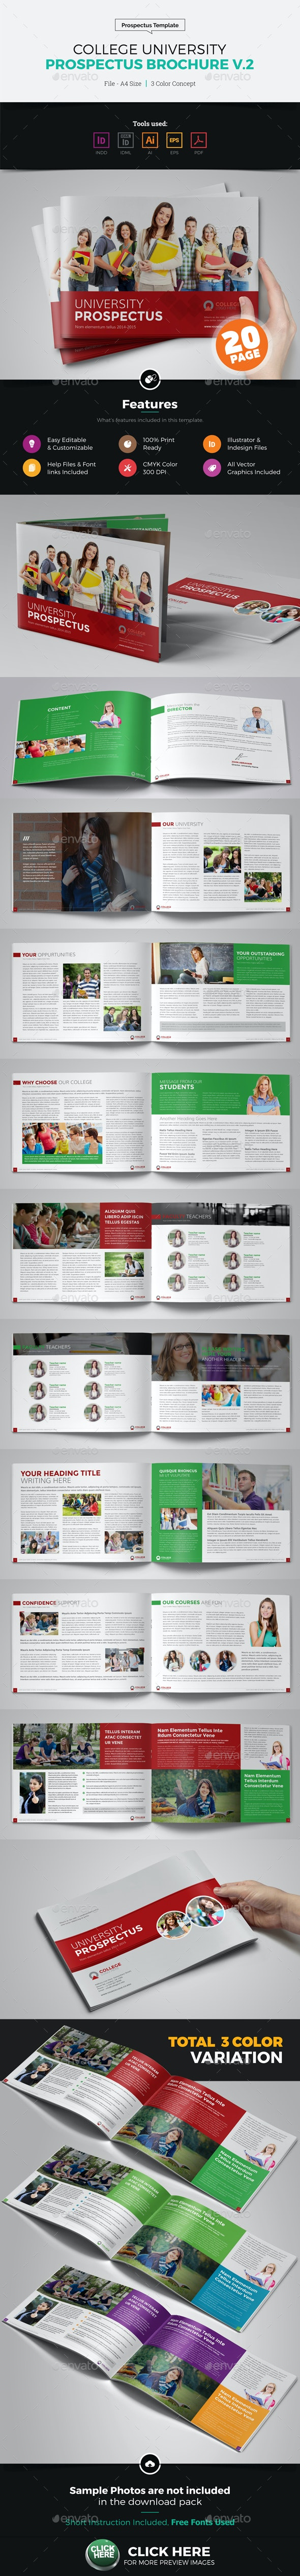 College University Prospectus Brochure v2 - Corporate Brochures